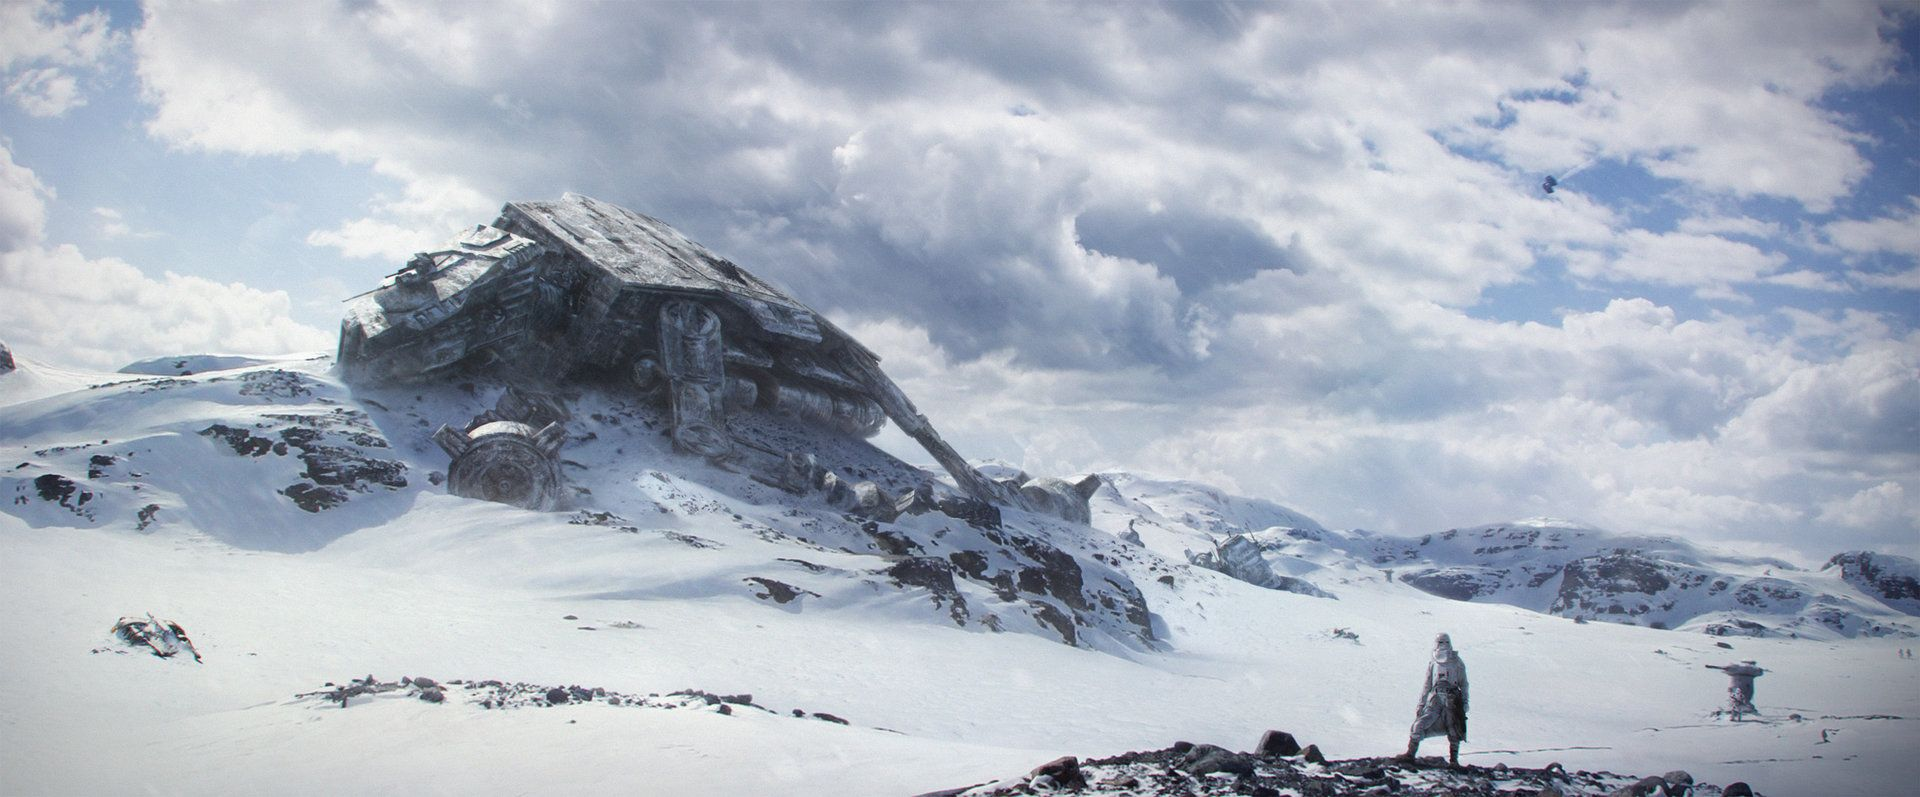 Free Download 60 Star Wars Landscape Wallpapers Download At Wallpaperbro 1920x797 For Your Desktop Mobile Tablet Explore 35 Star Wars Snowy Background Star Wars Snowy Background Star Wars Star